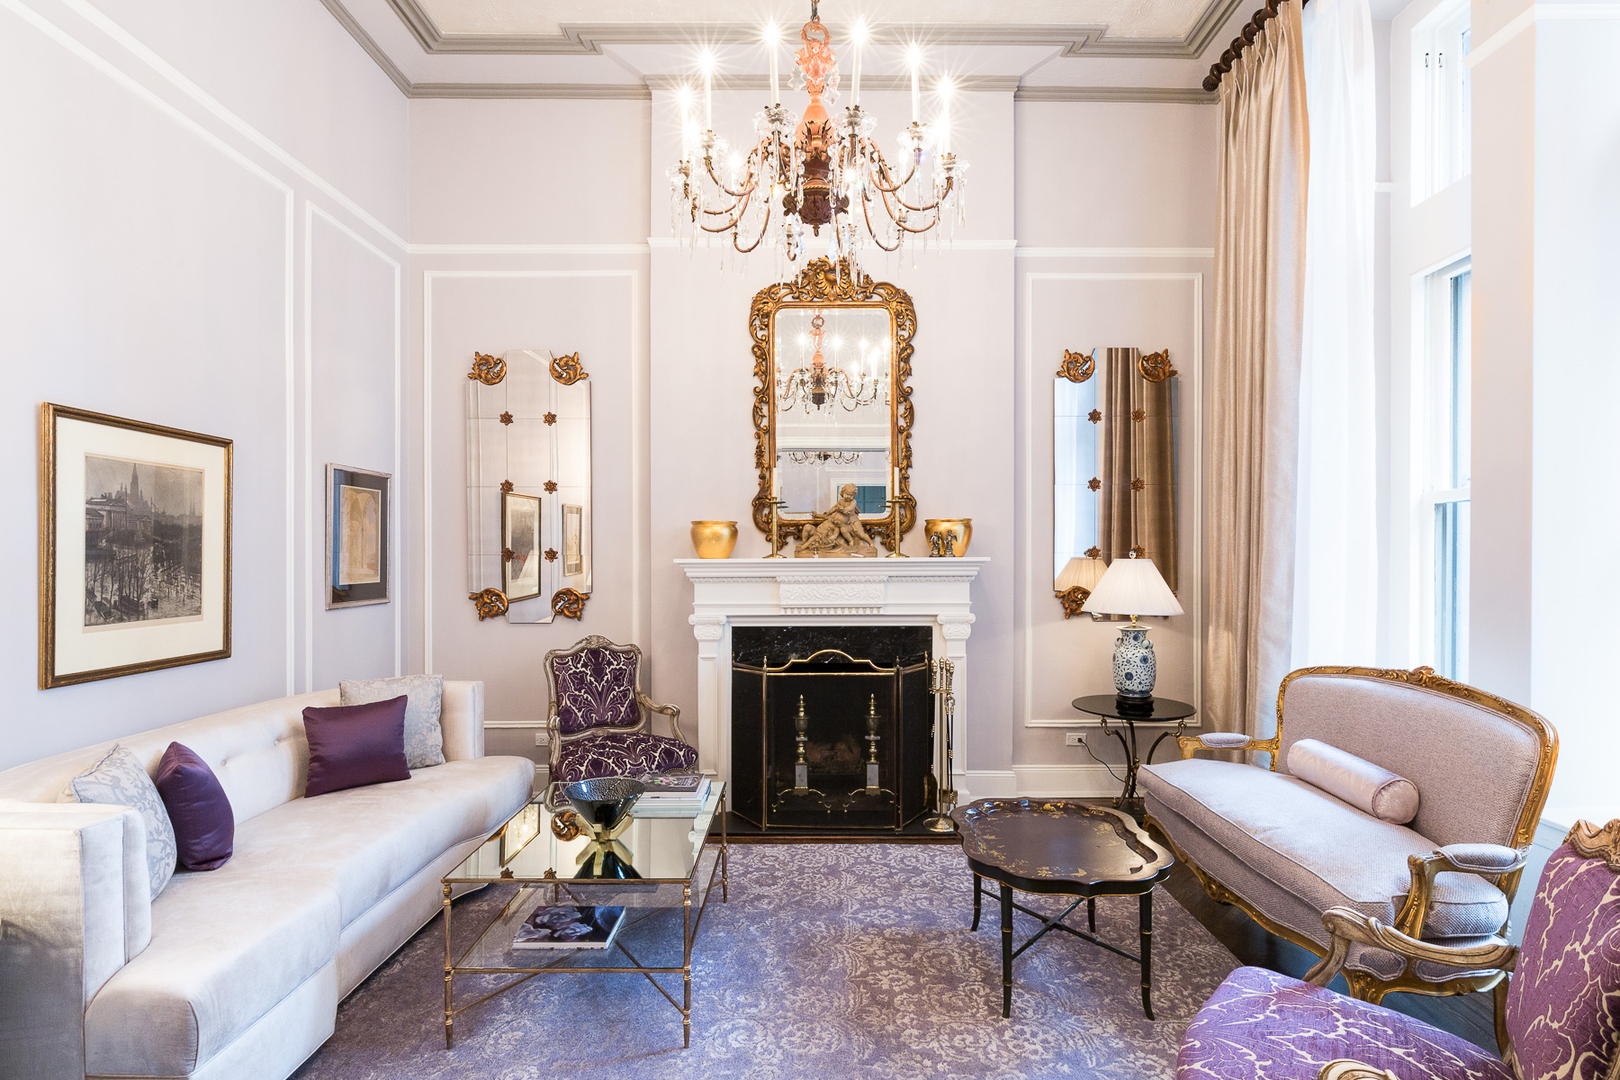 Rococo Design Interiors Is A Firm Located In Brooklyn Founder Ursaille Smiths Skills Conceptual Were Formed During Her Study At The Art